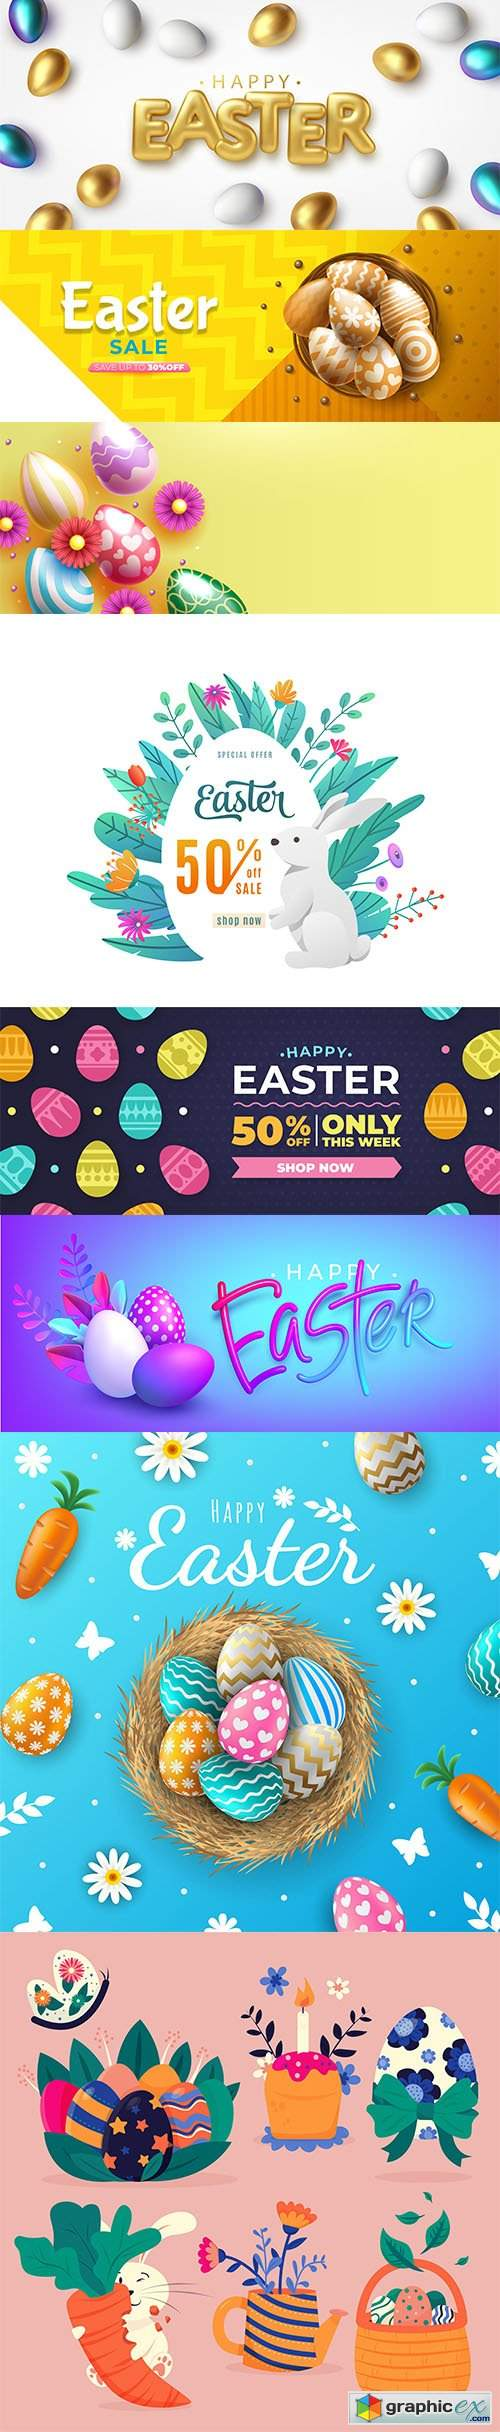 Hand-drawn cute easter illustrations and banner vol 4